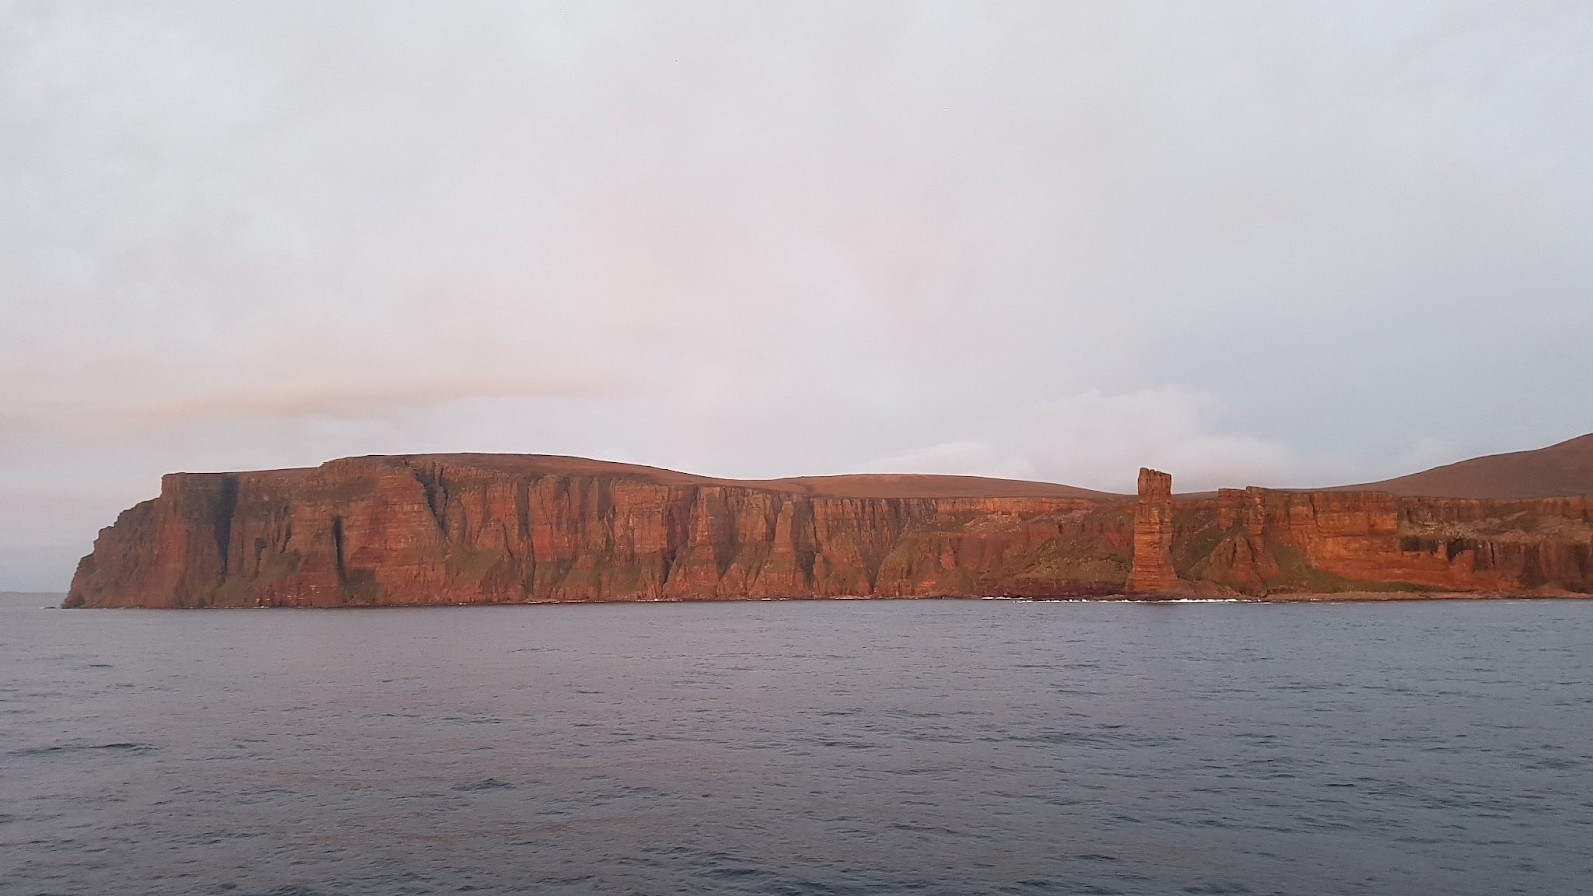 The Old Man of Hoy - image by Richy Ainsworth